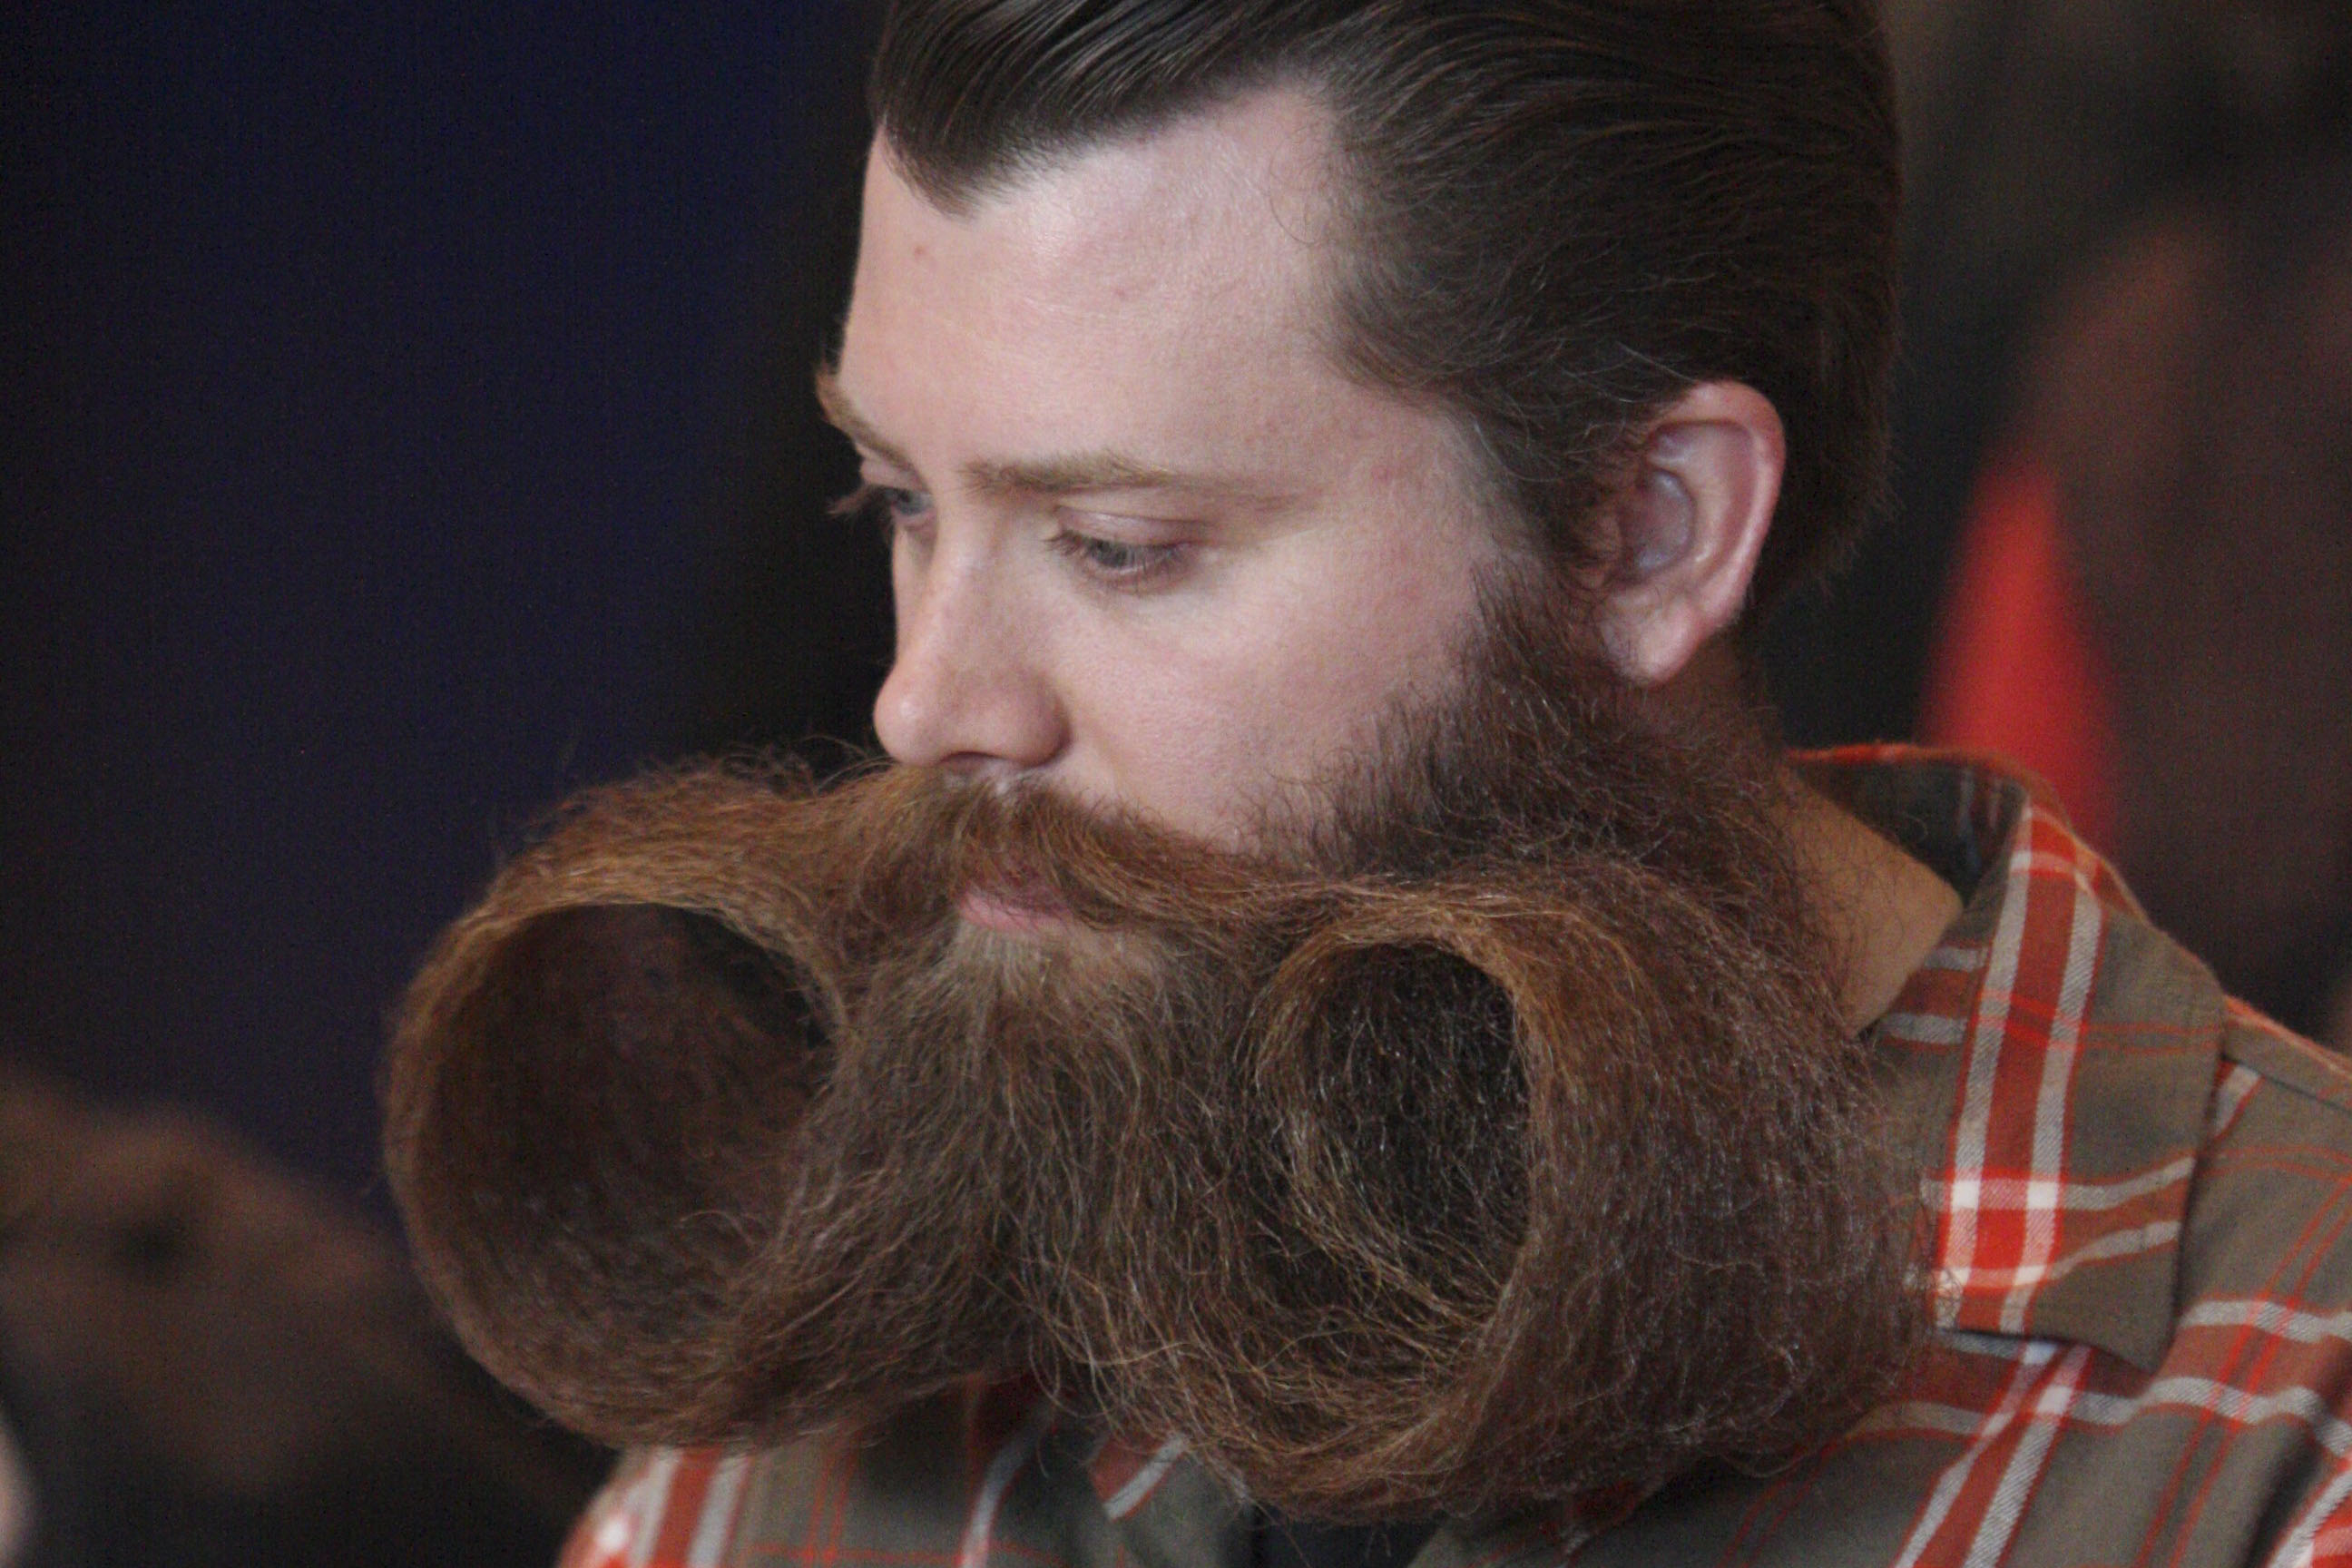 Beard_Competition_header